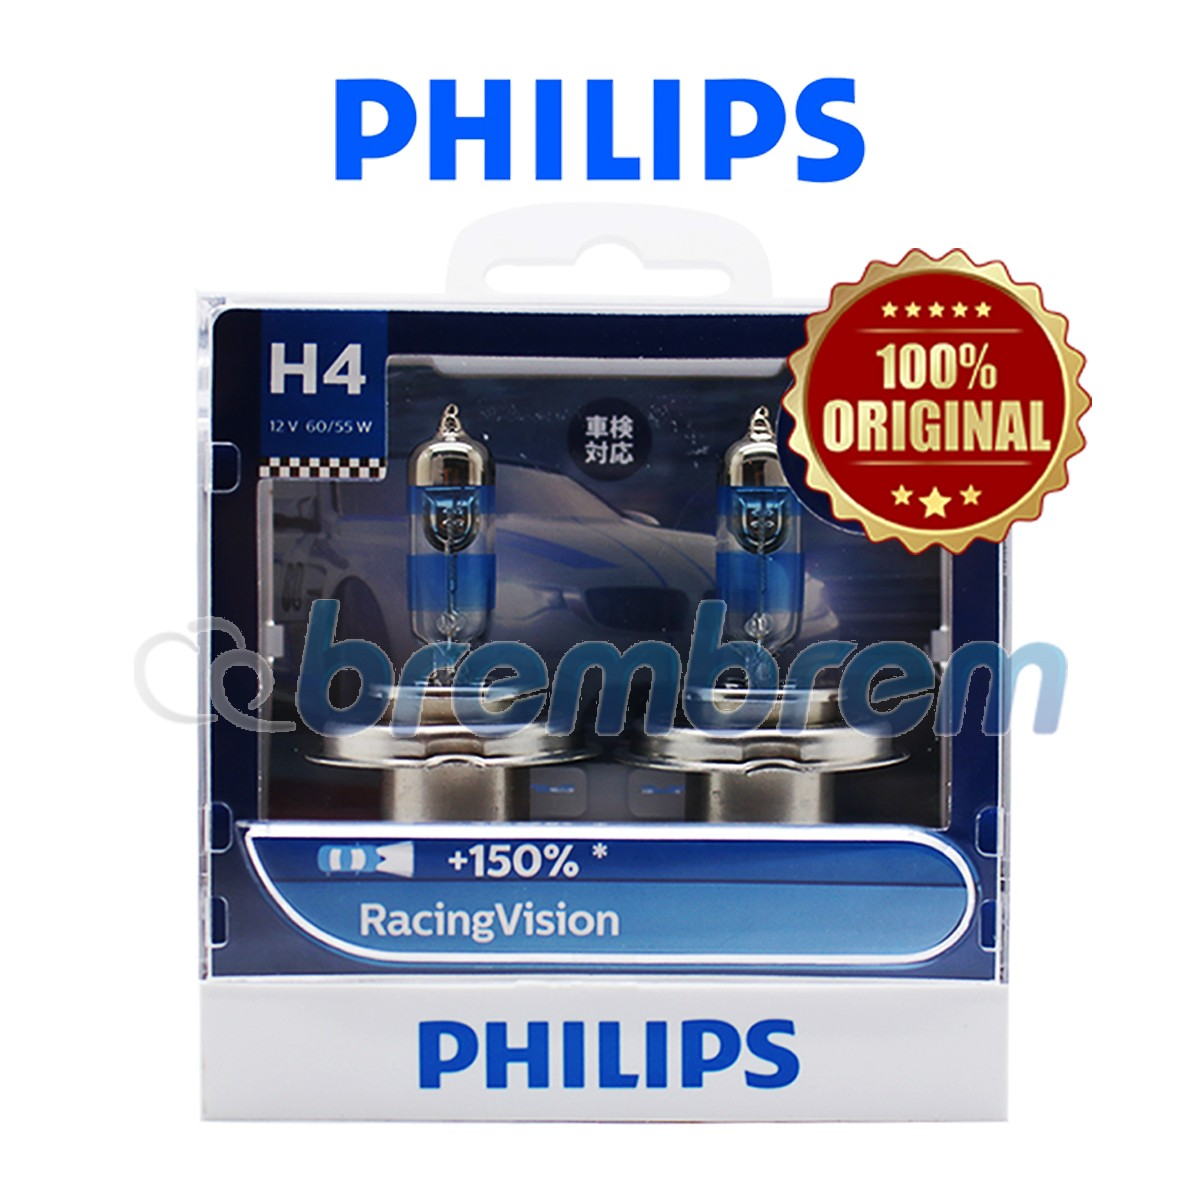 PHILIPS RACING VISION H4 - LAMPU HALOGEN